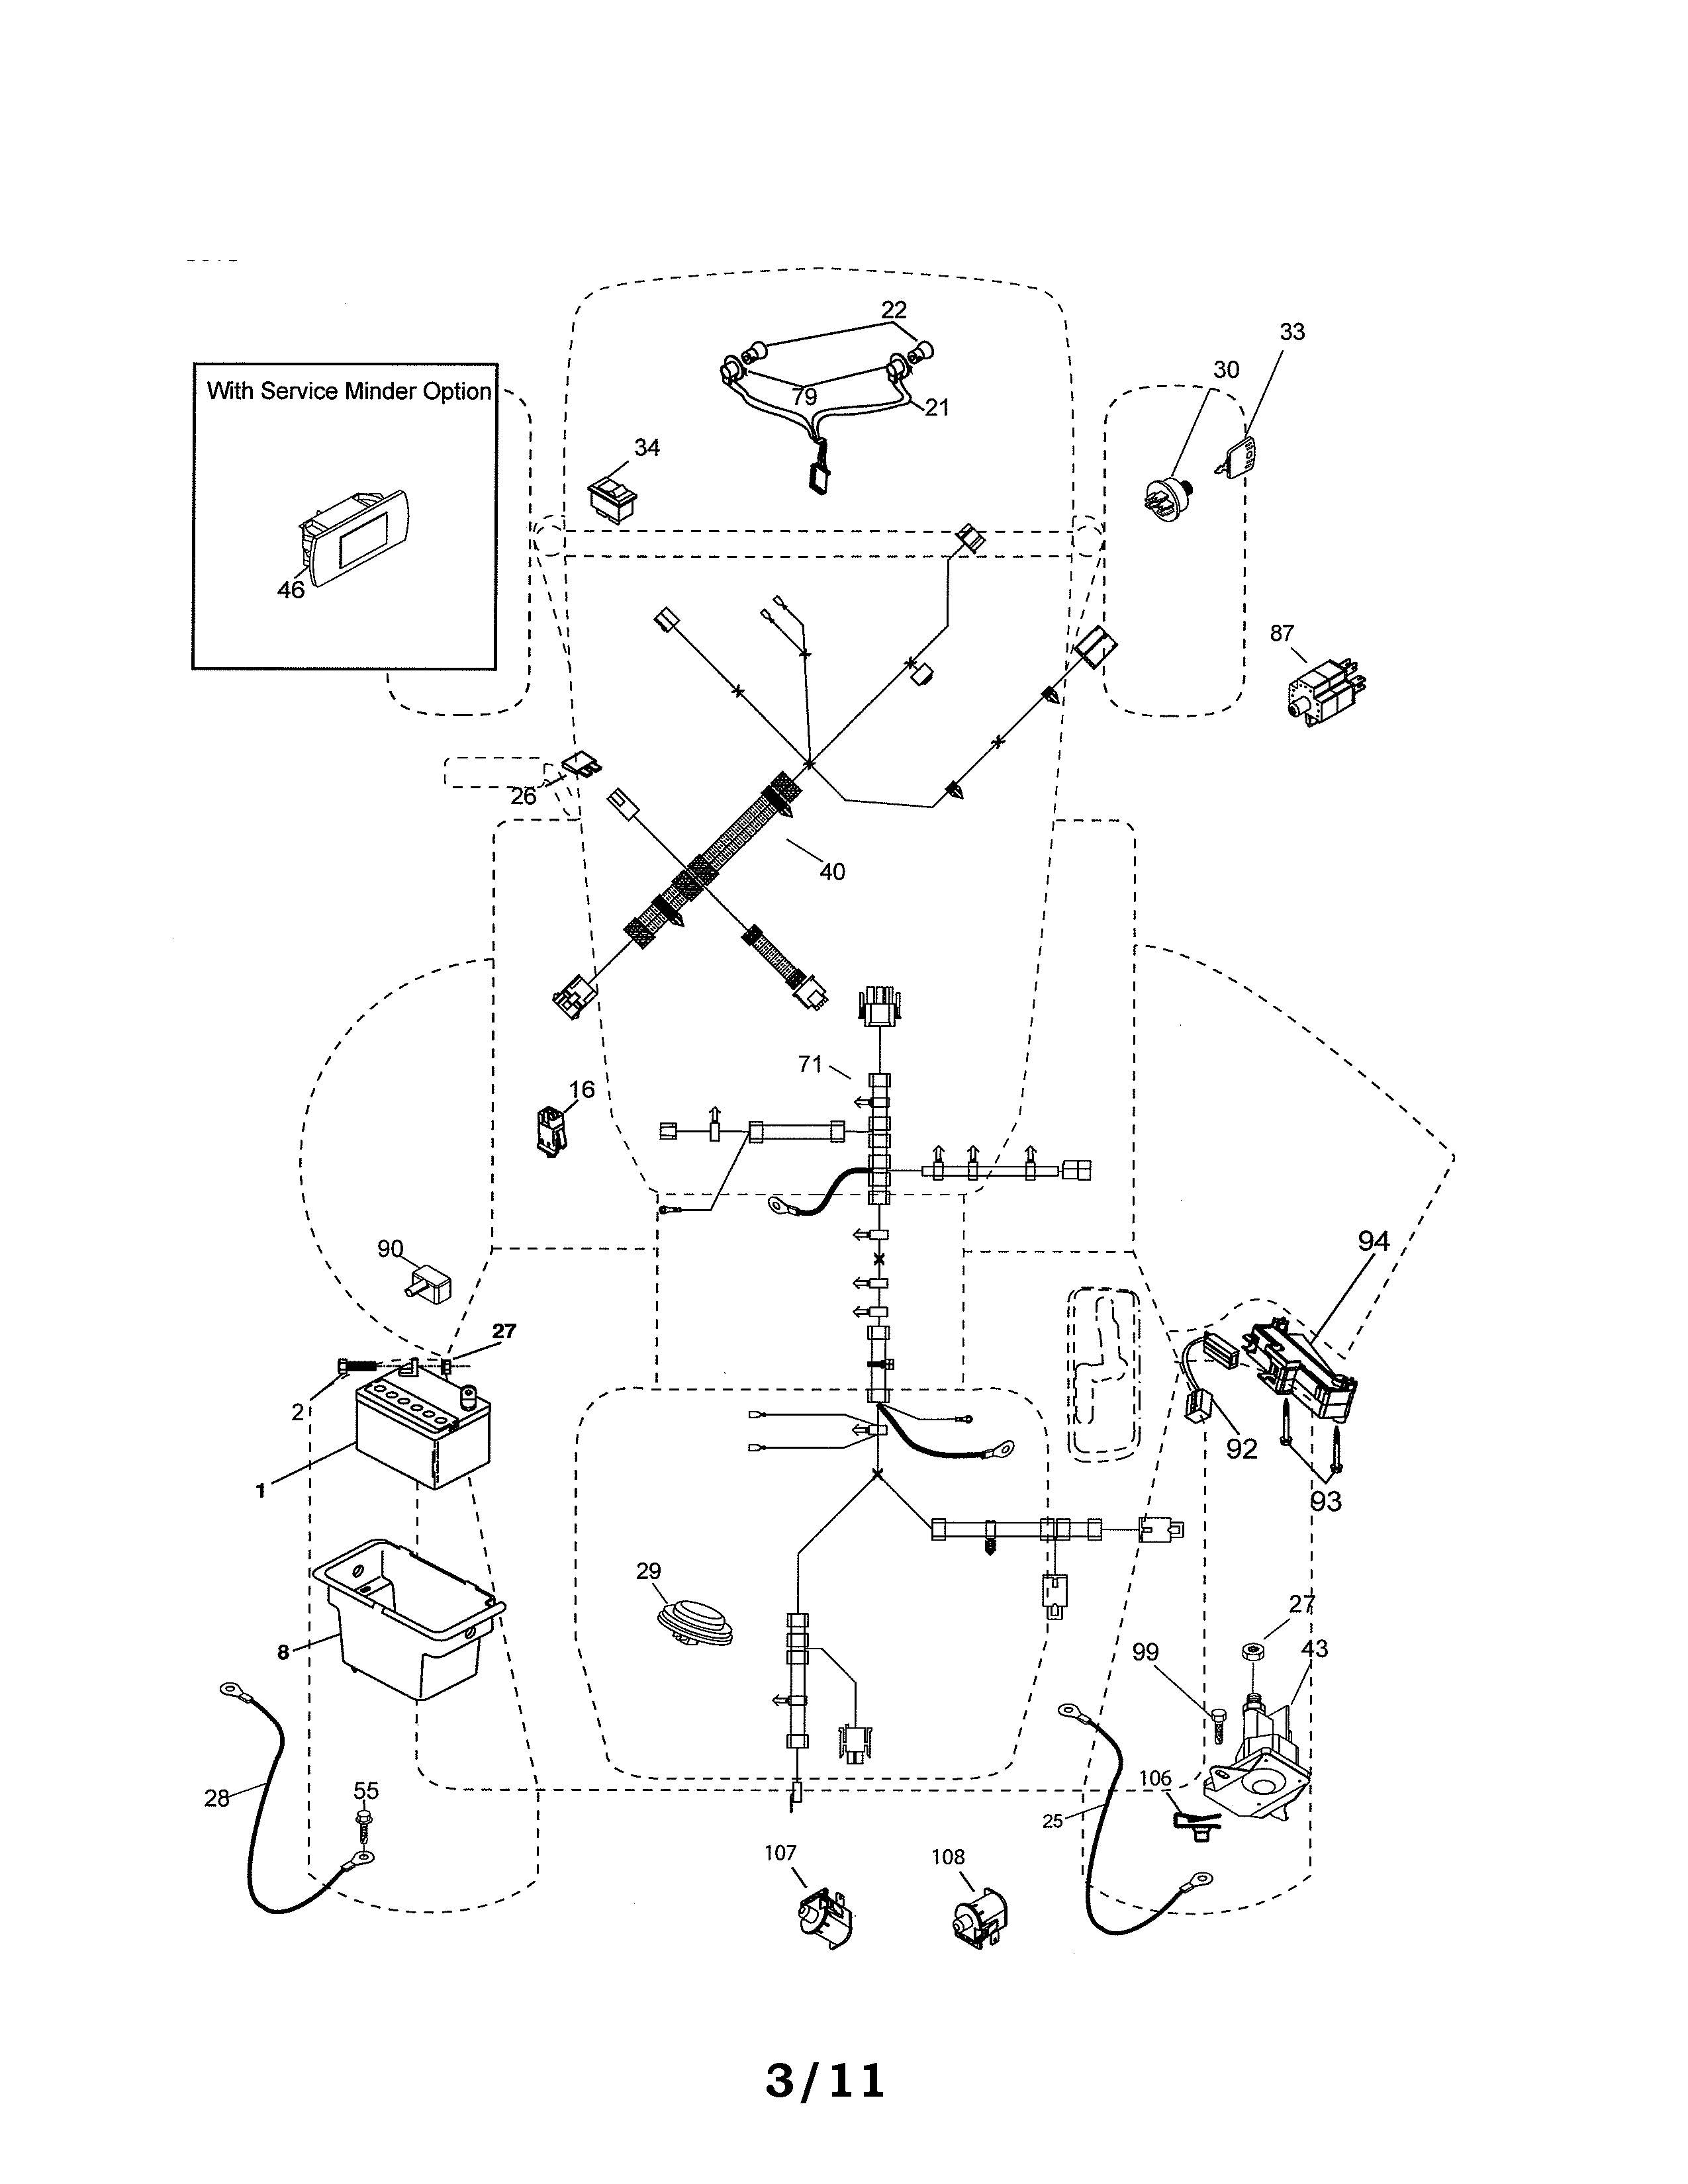 Wiring Diagram For Husqvarna Mower